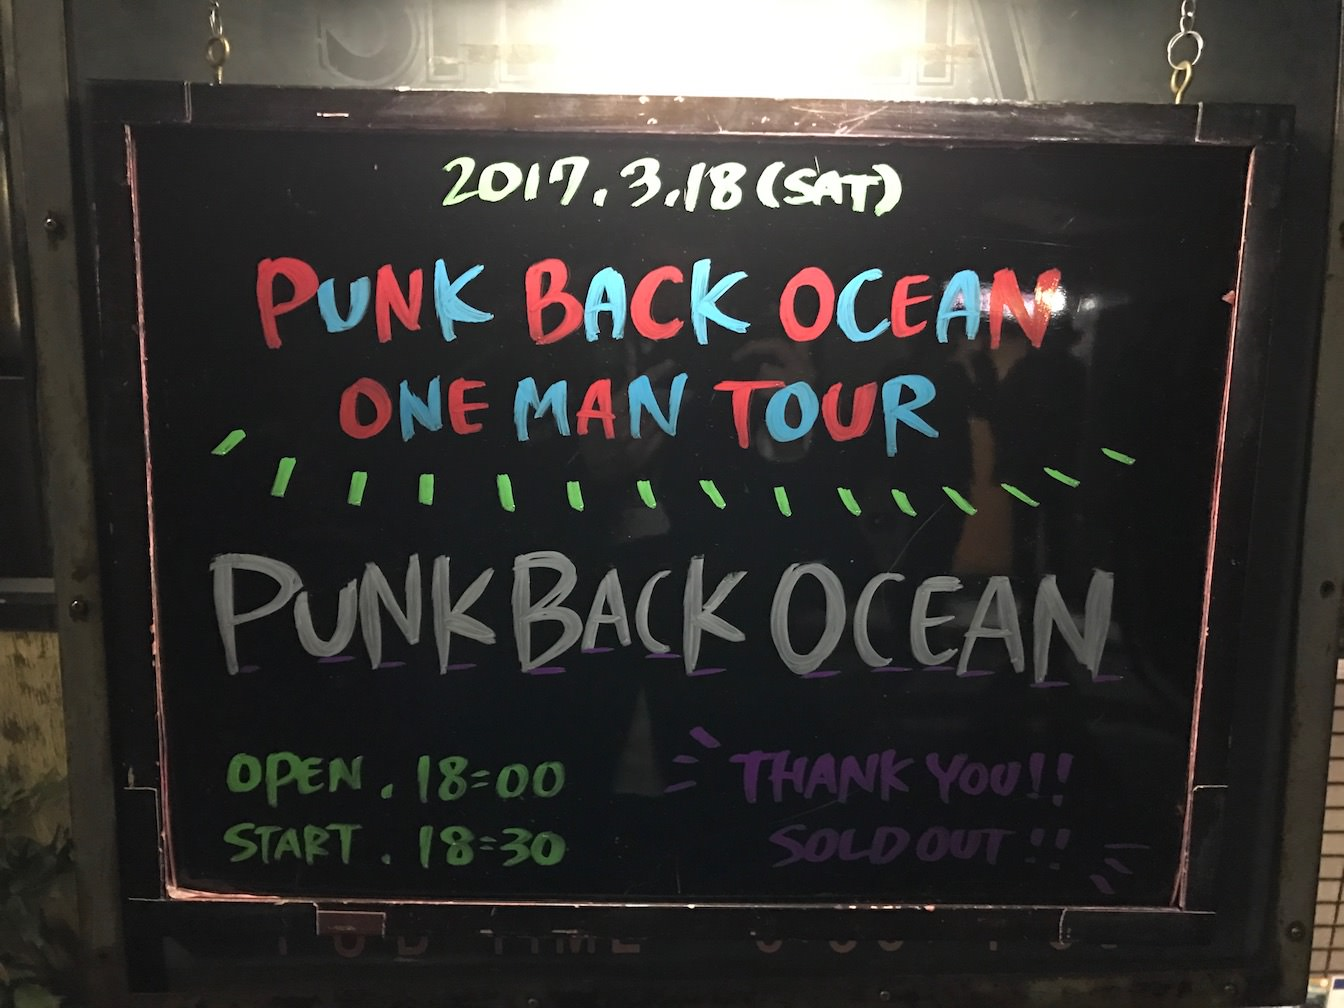 Punk back ocean live report 2017 3 18